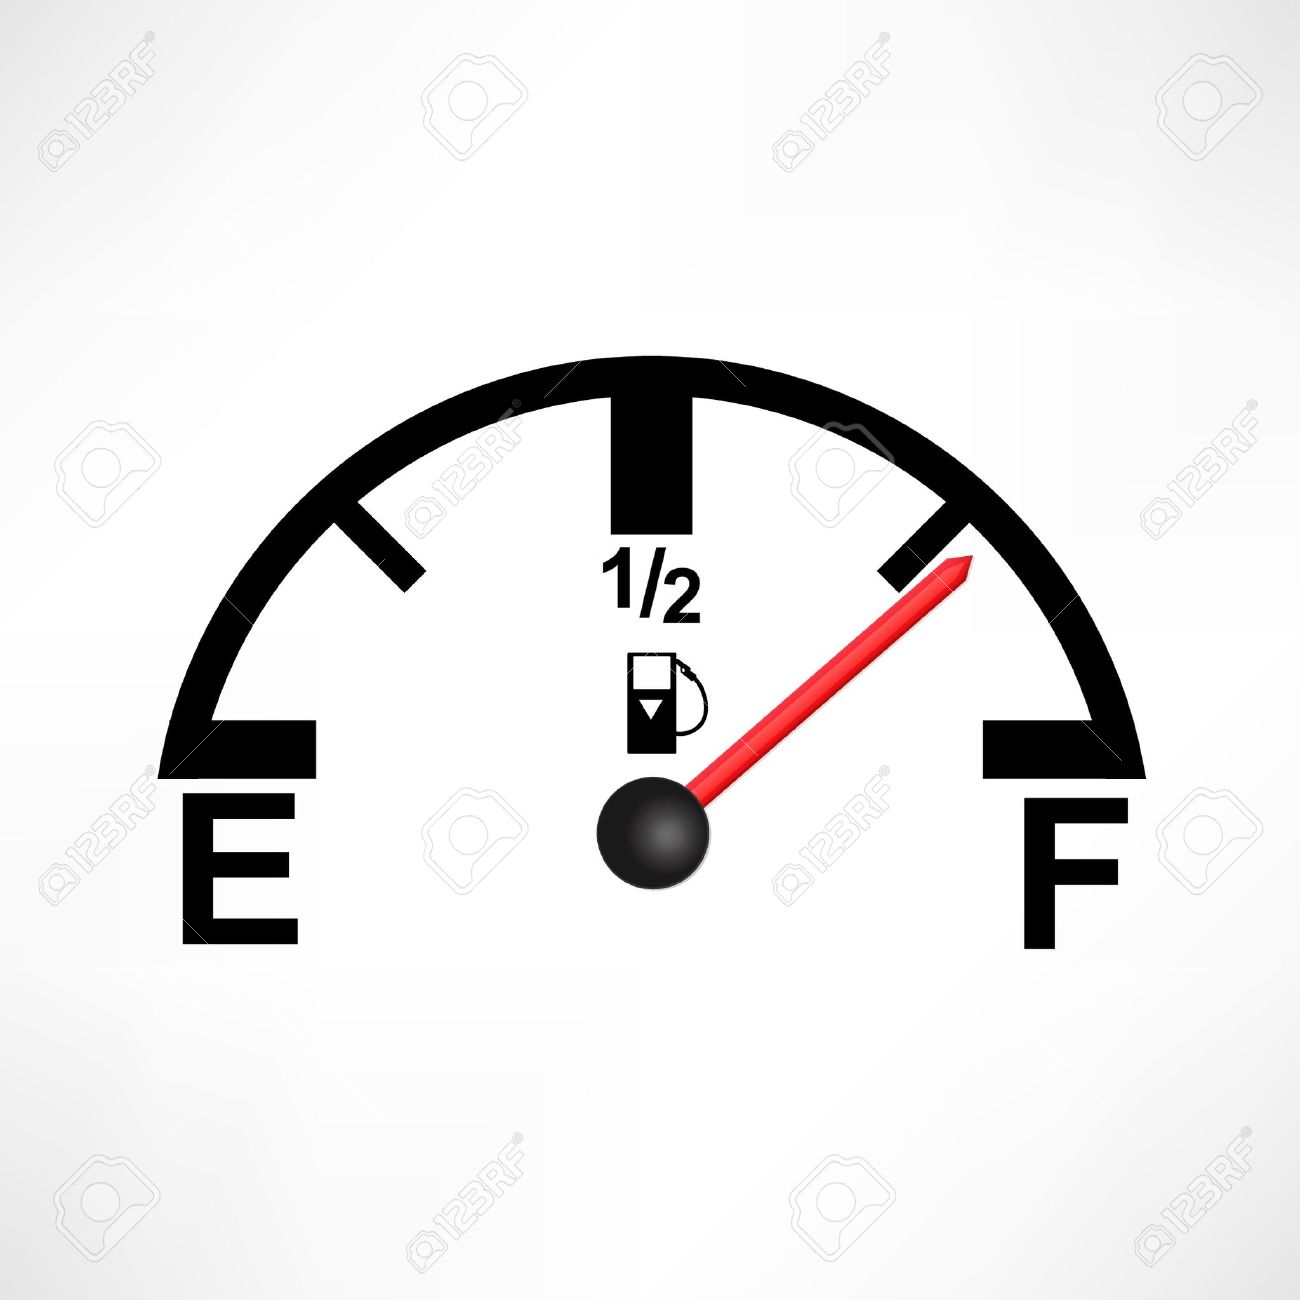 Fuel gauge clipart no needle.